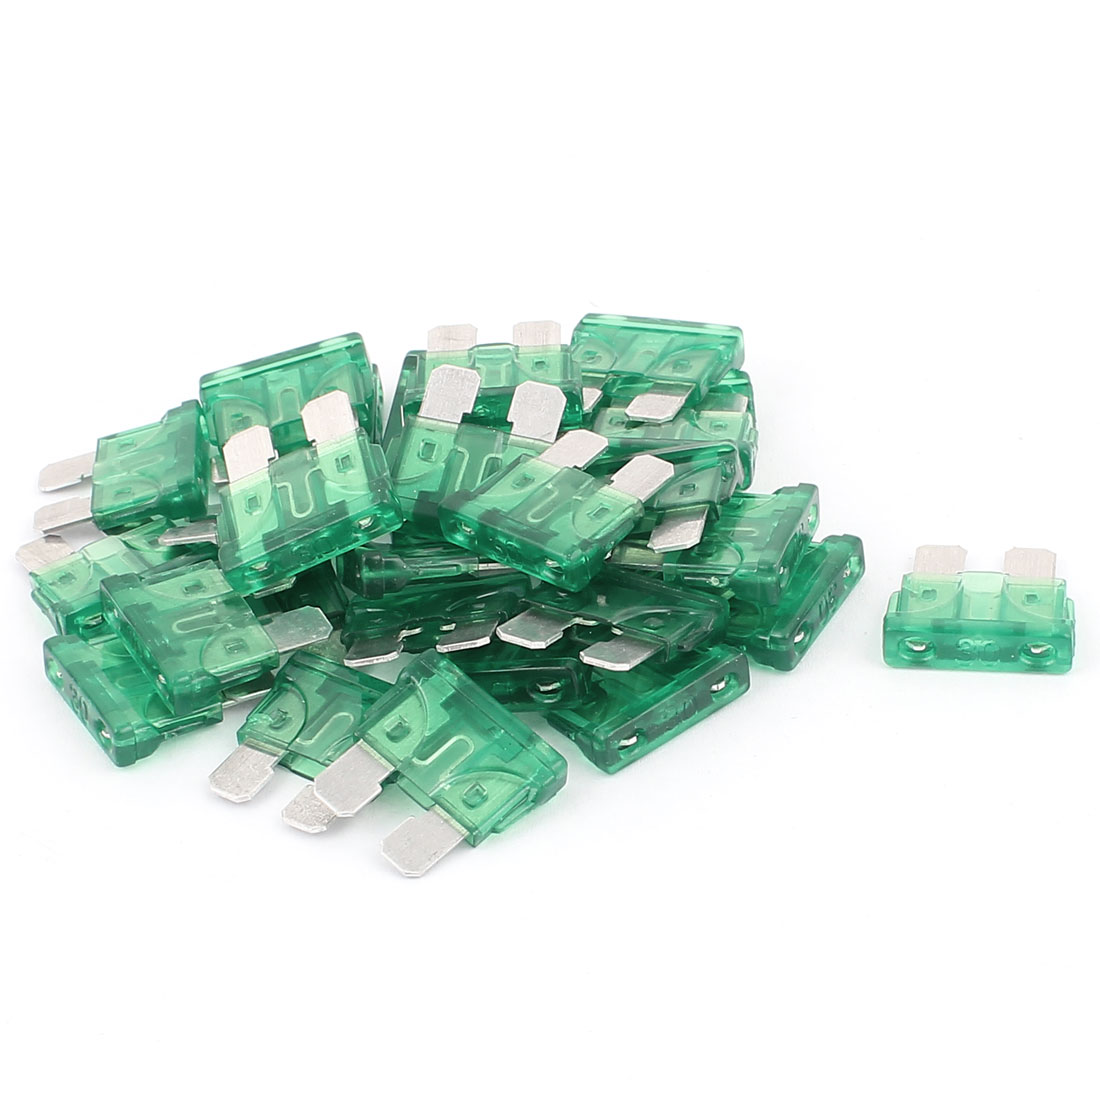 30pcs 30A Green Plastic Casing Blade Fuse for Auto Car Truck Motorcycle SUV